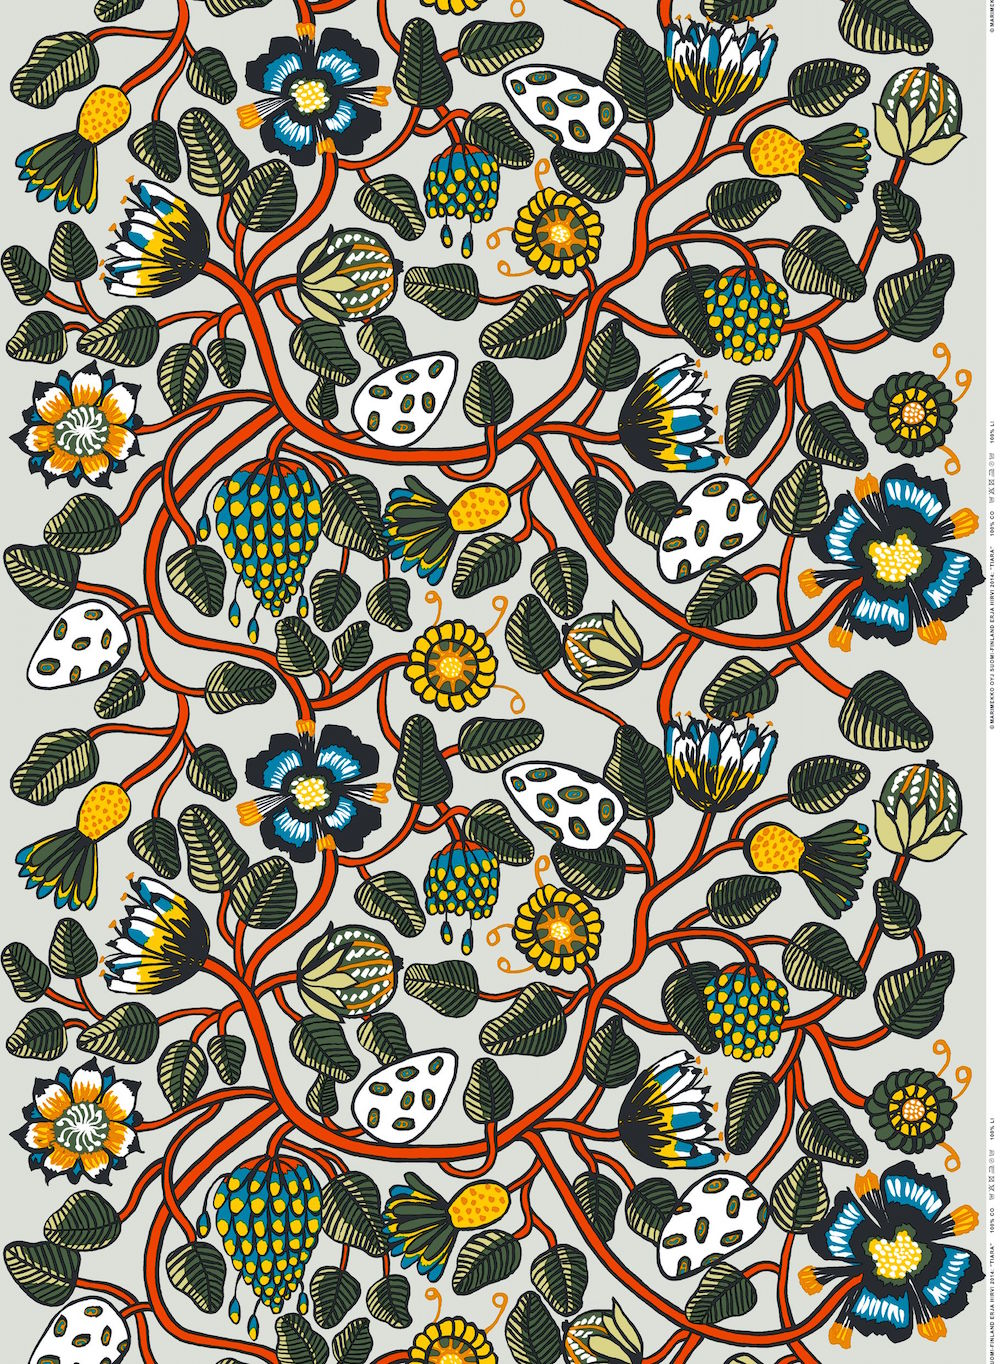 Marimekko tiara fabric design erja hirvi for Scandic design